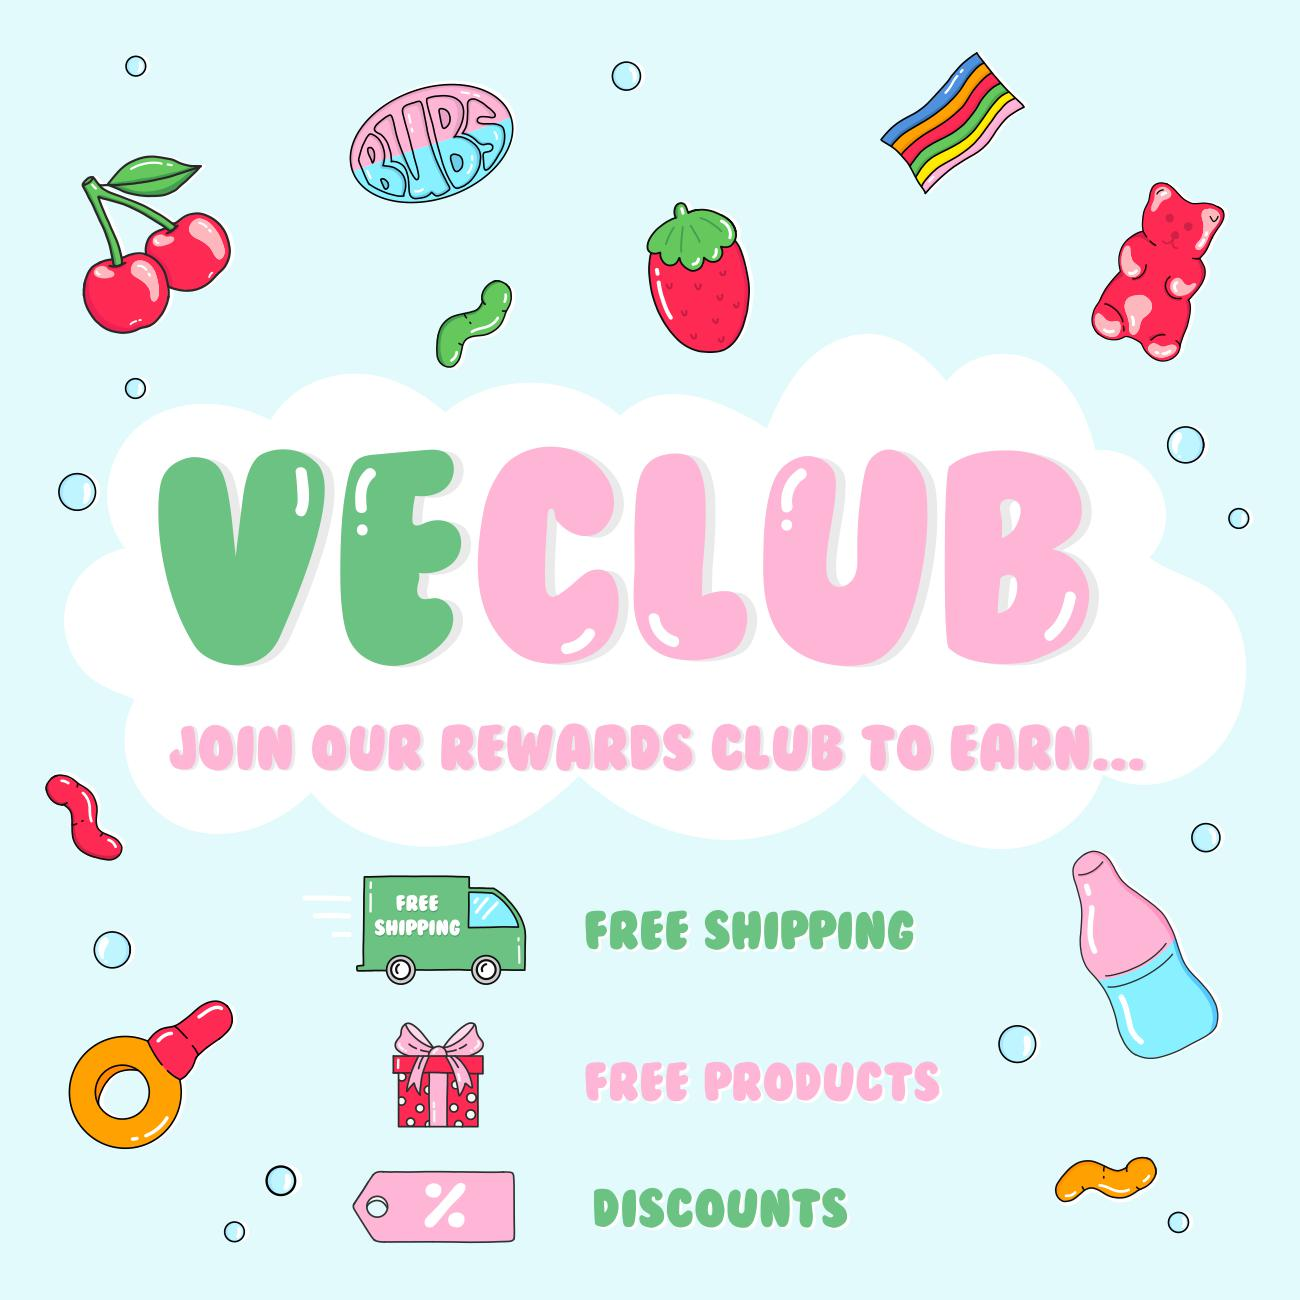 reward club Veclub